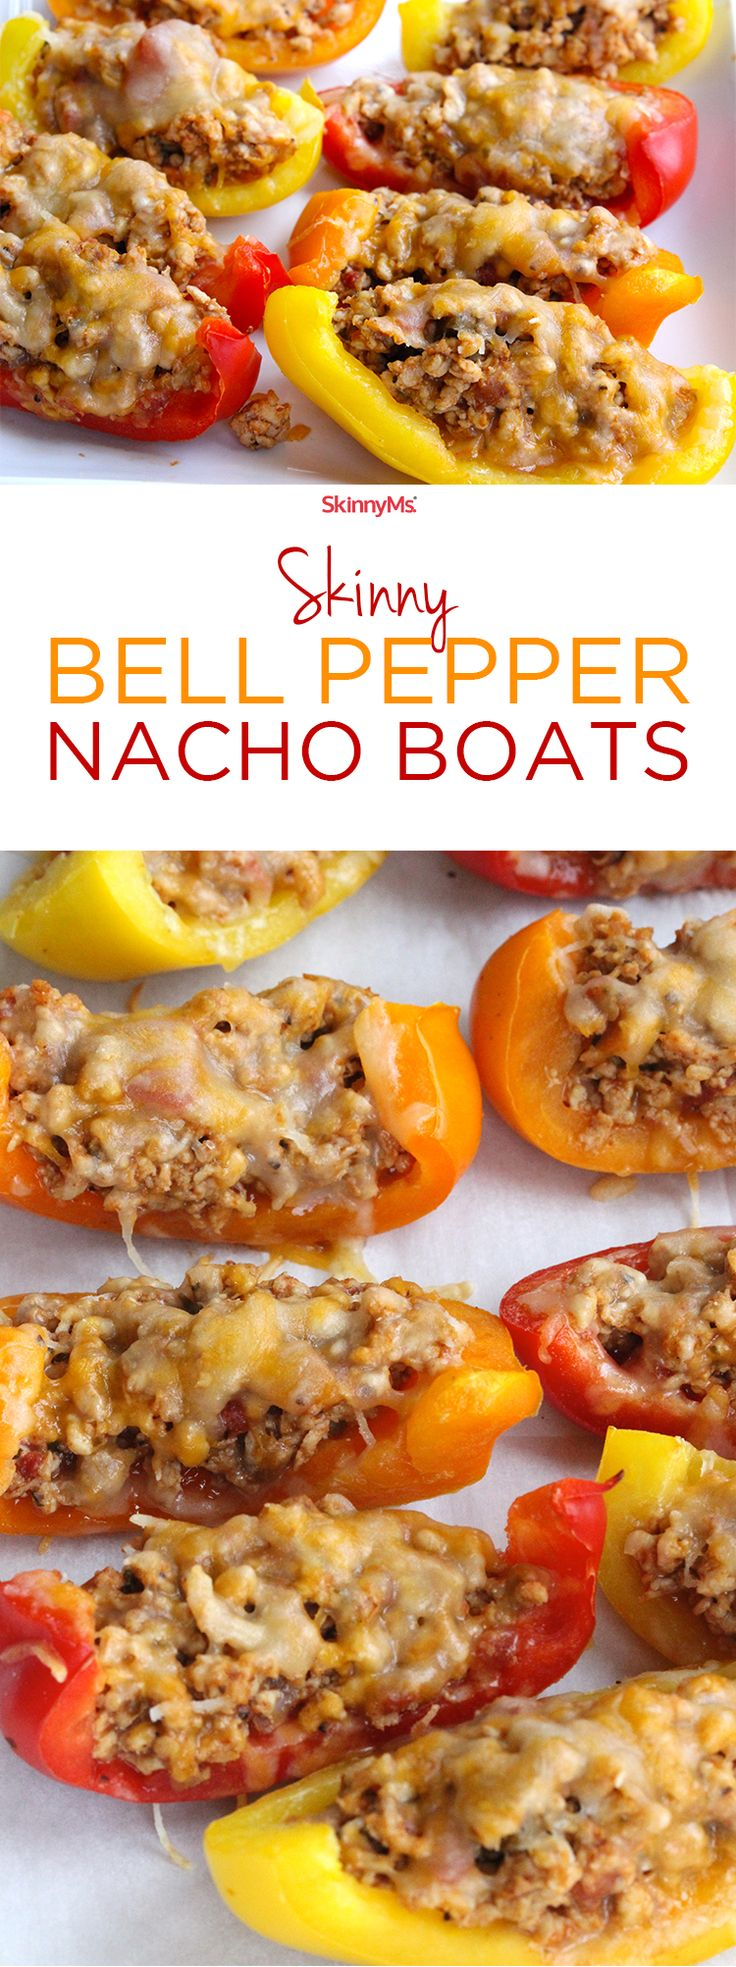 These Skinny Bell Pepper Nacho Boats are  Low-Carb, Low-Calorie, High Protein and